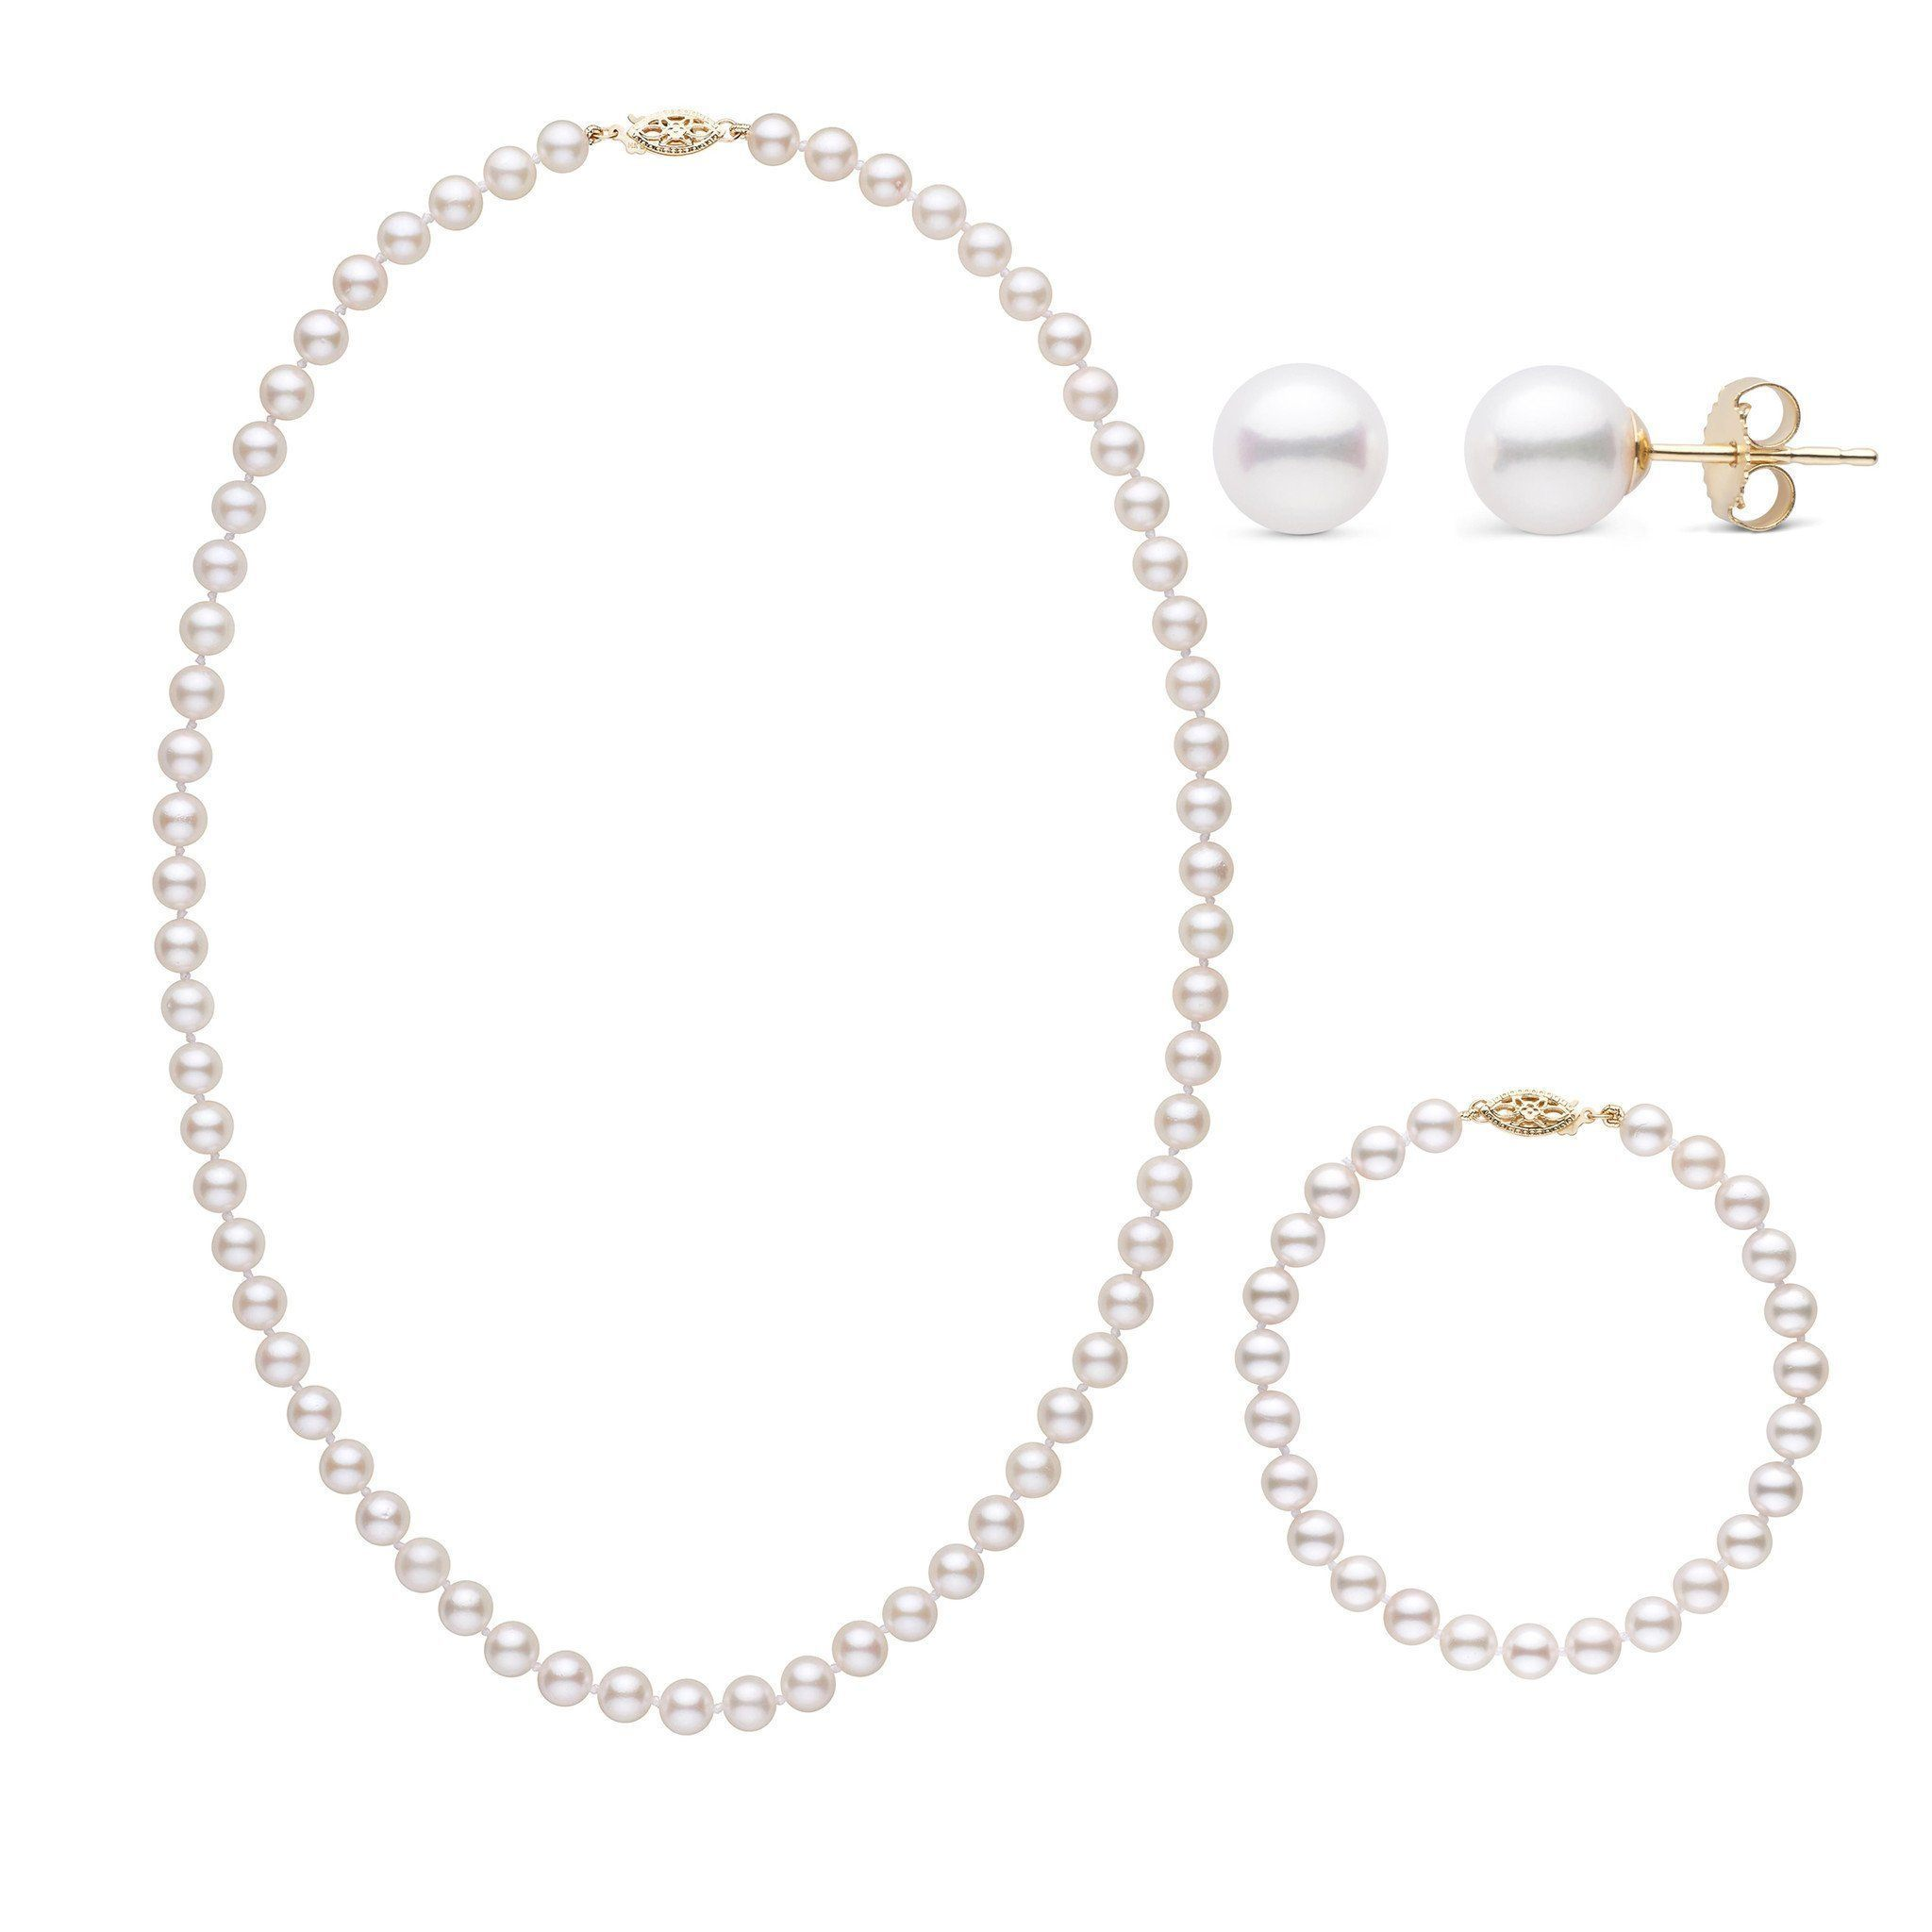 18 Inch 3 Piece Set of 6.0-6.5 mm AA+ White Akoya Pearls